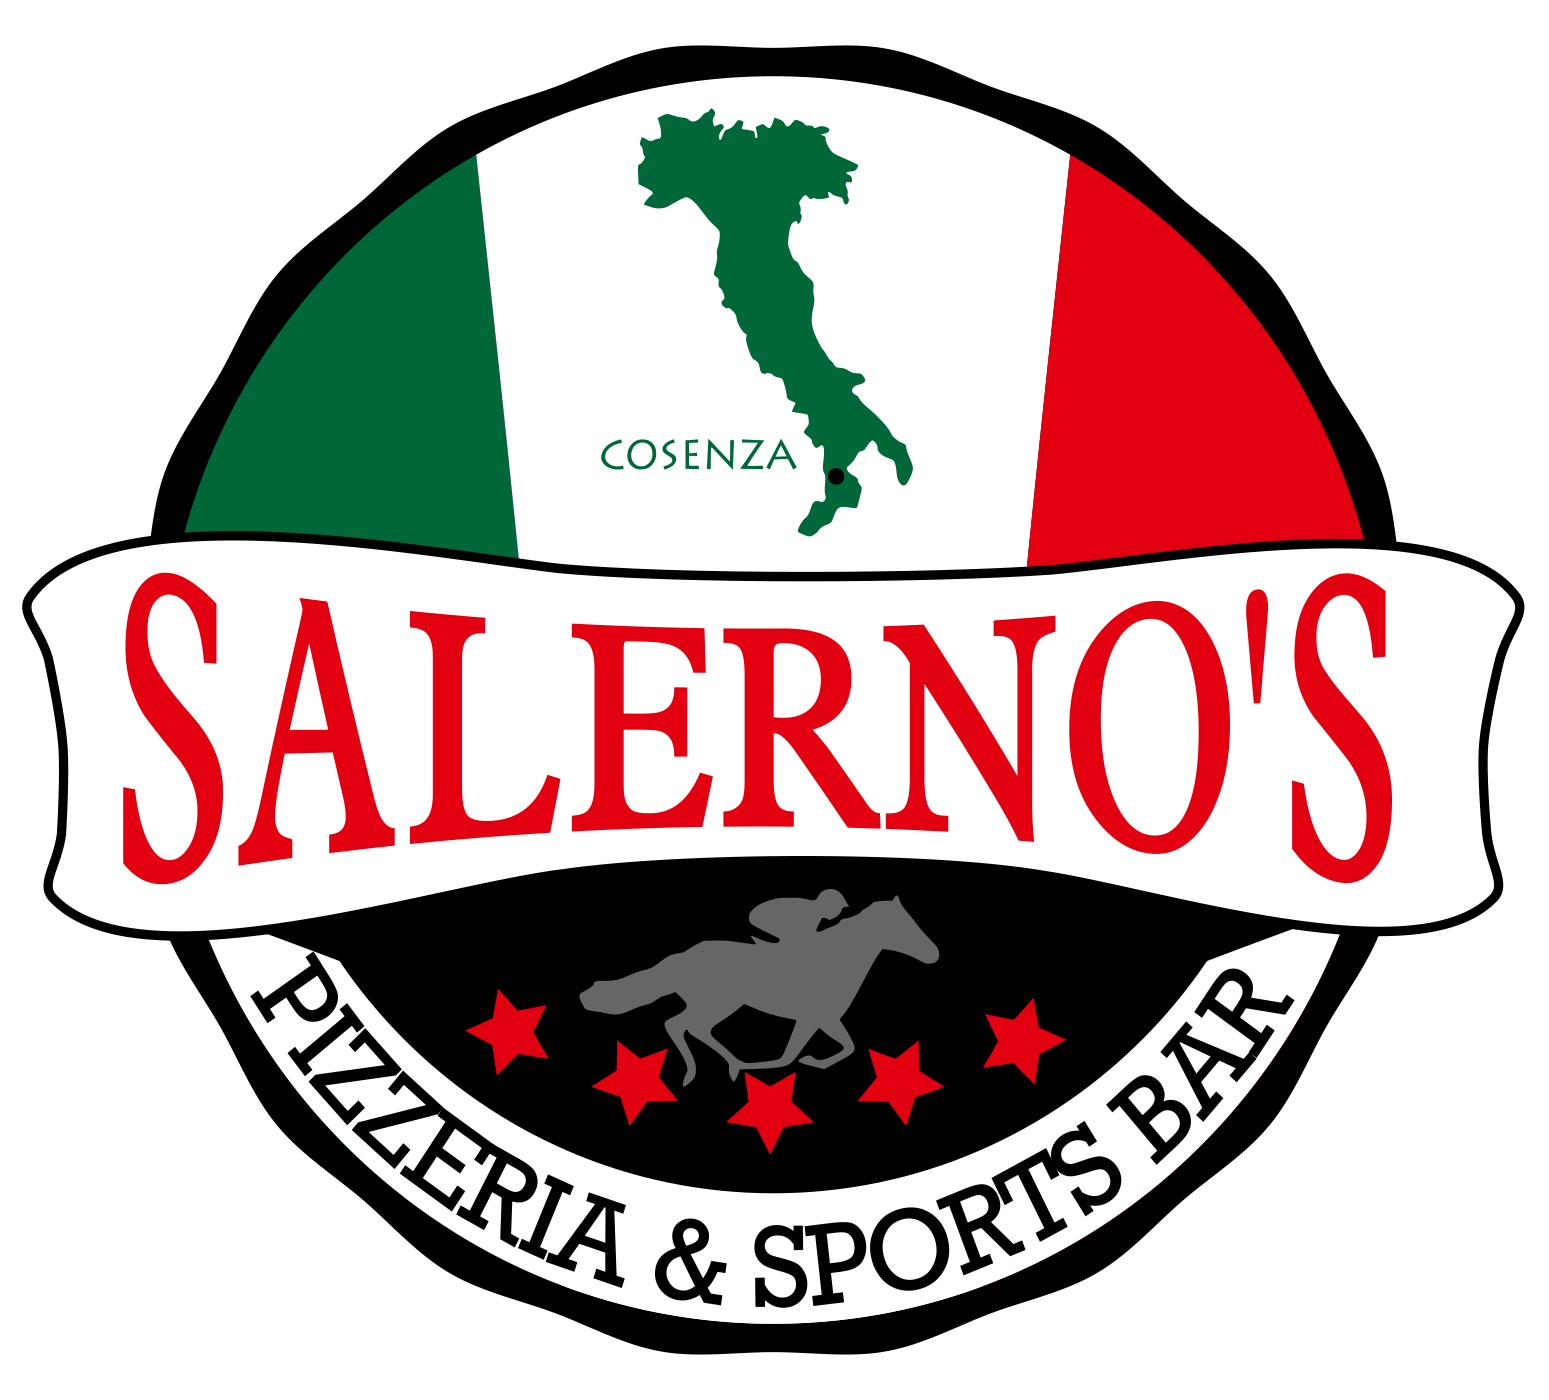 salerno's pizzeria and sports bar logo